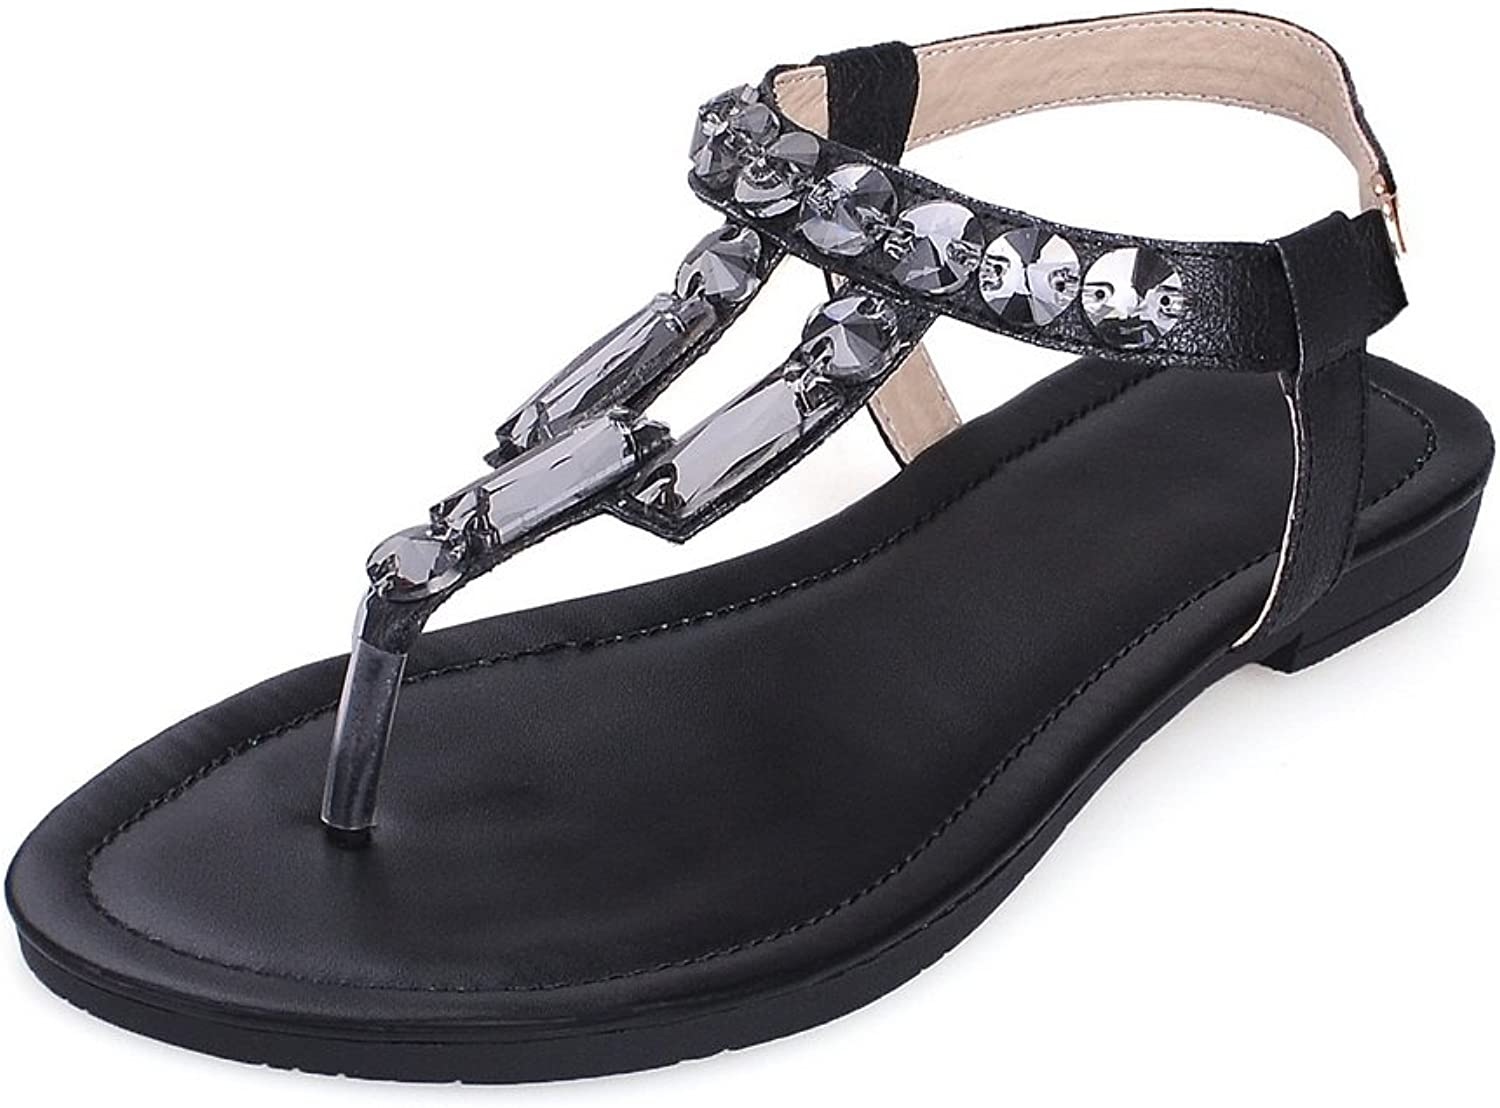 AdeeSu Ladies Toepost Style Buckle Leather Sandals